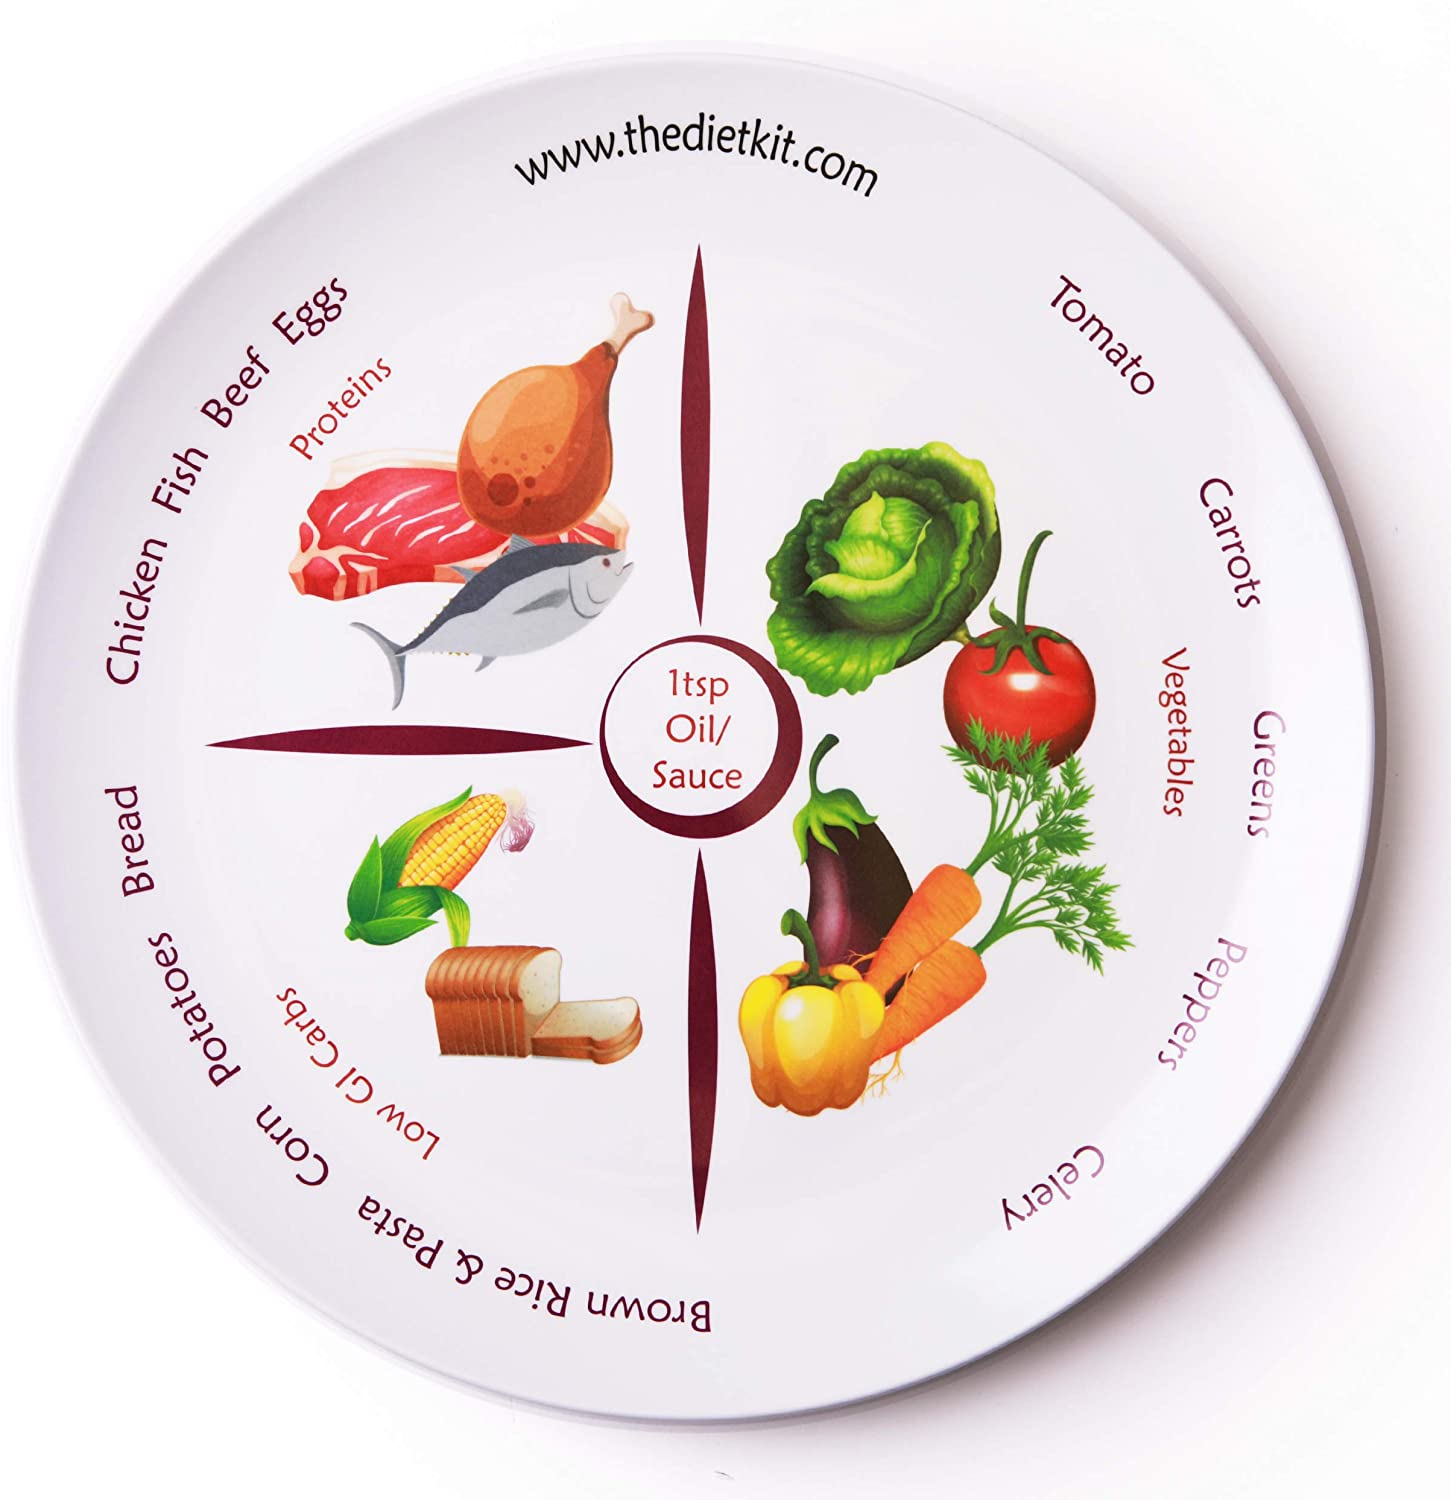 The Diet Kit's portion plate costs £6.79